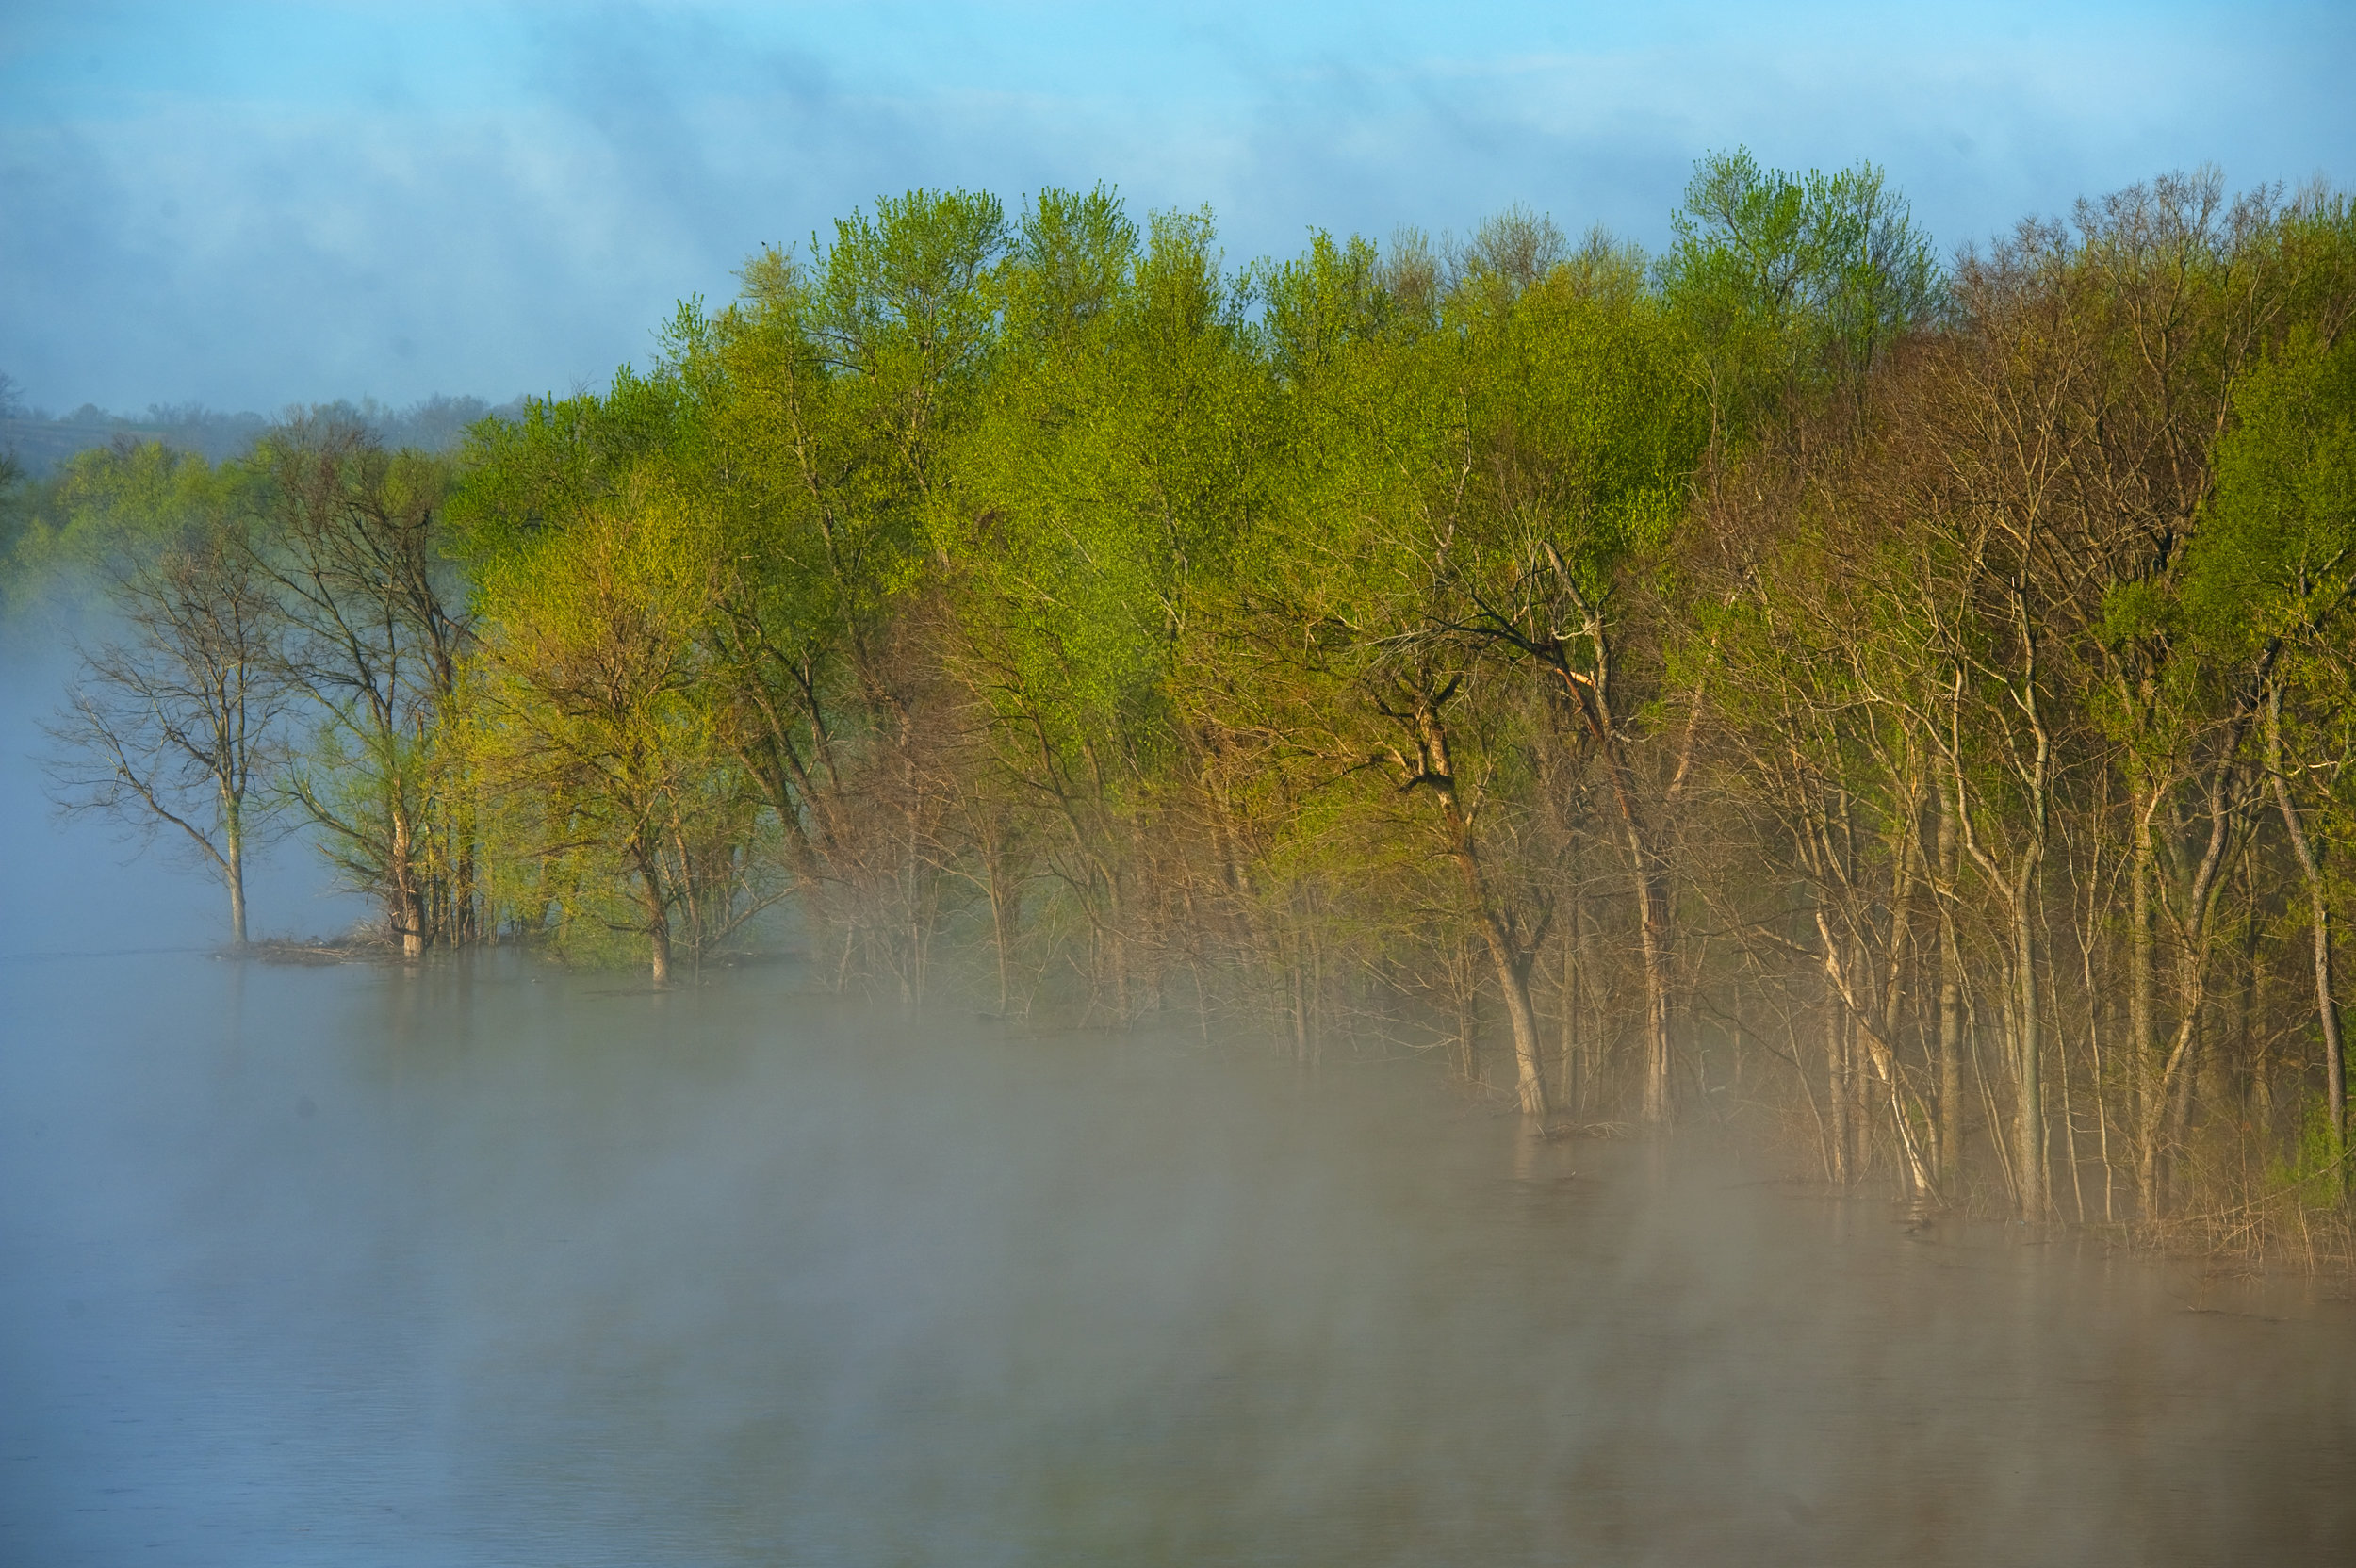 kentucky-flood-river-tree.JPG